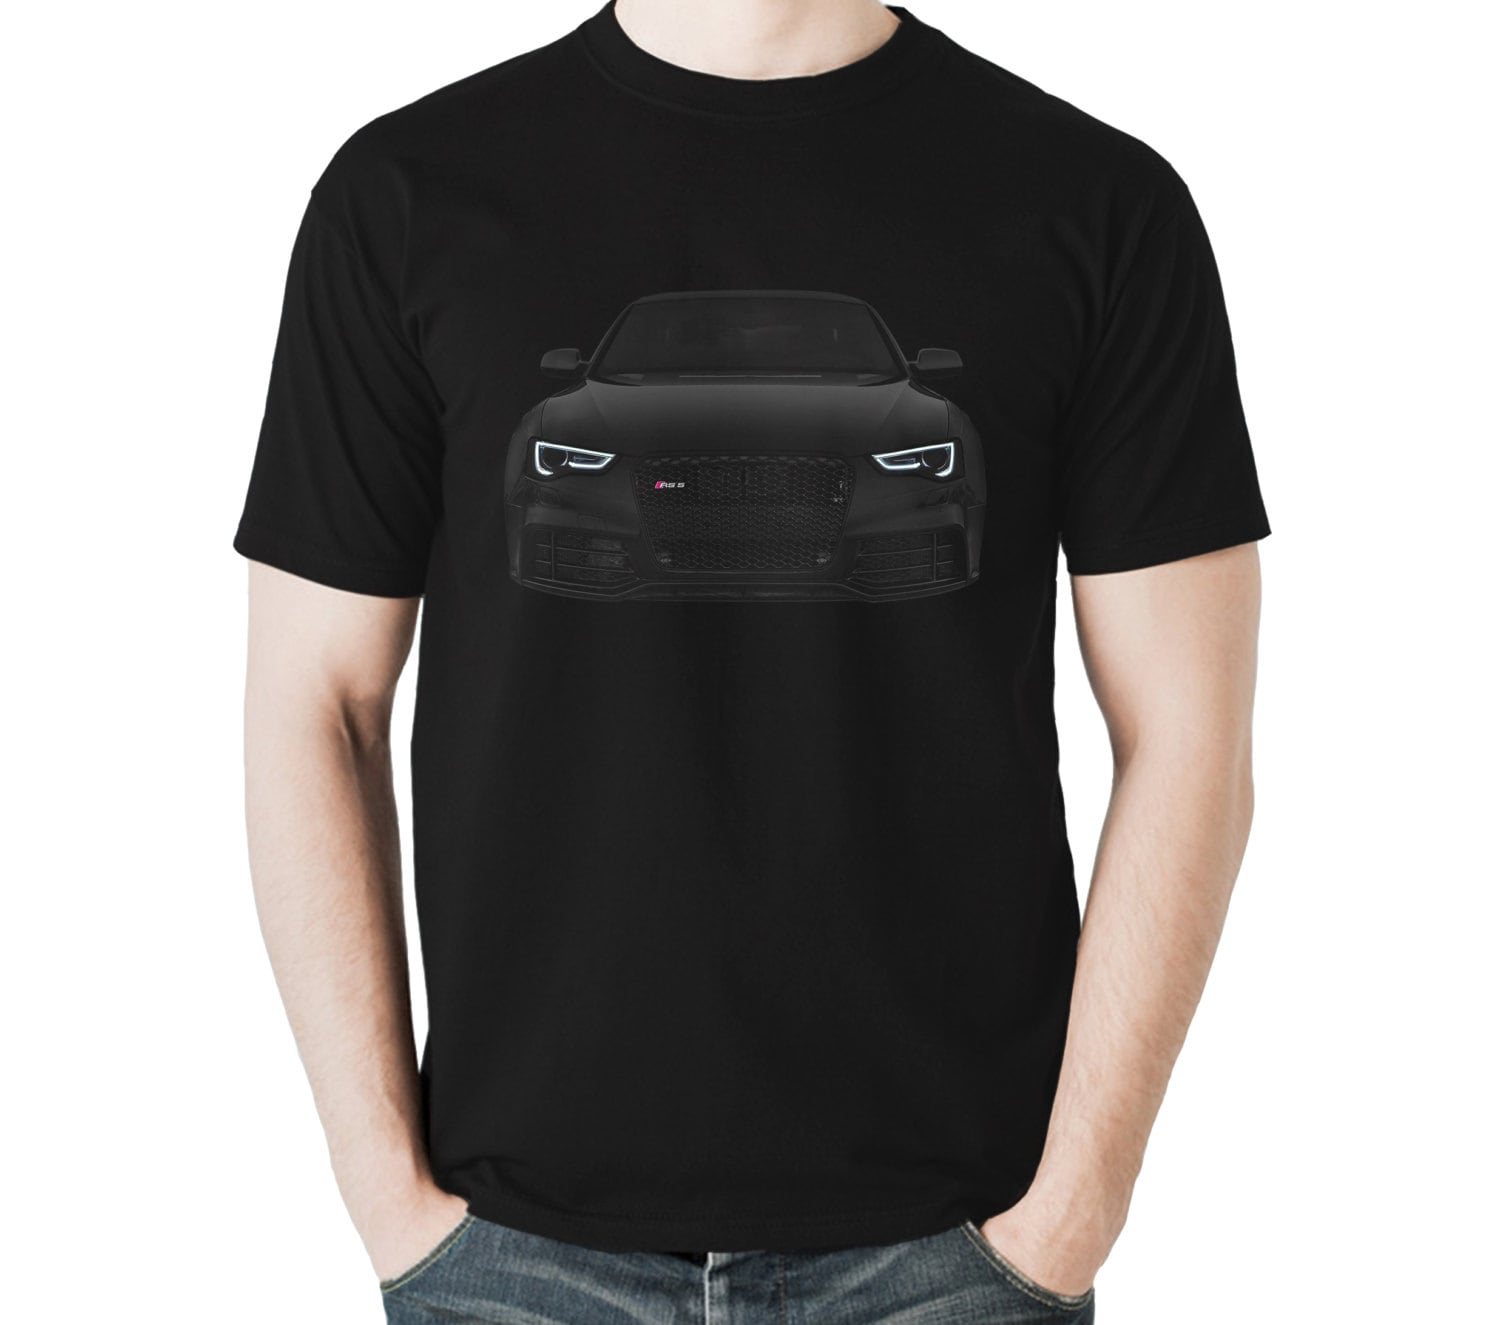 audi rs5 t shirt a5 s5 black mens gift idea 100 cotton. Black Bedroom Furniture Sets. Home Design Ideas